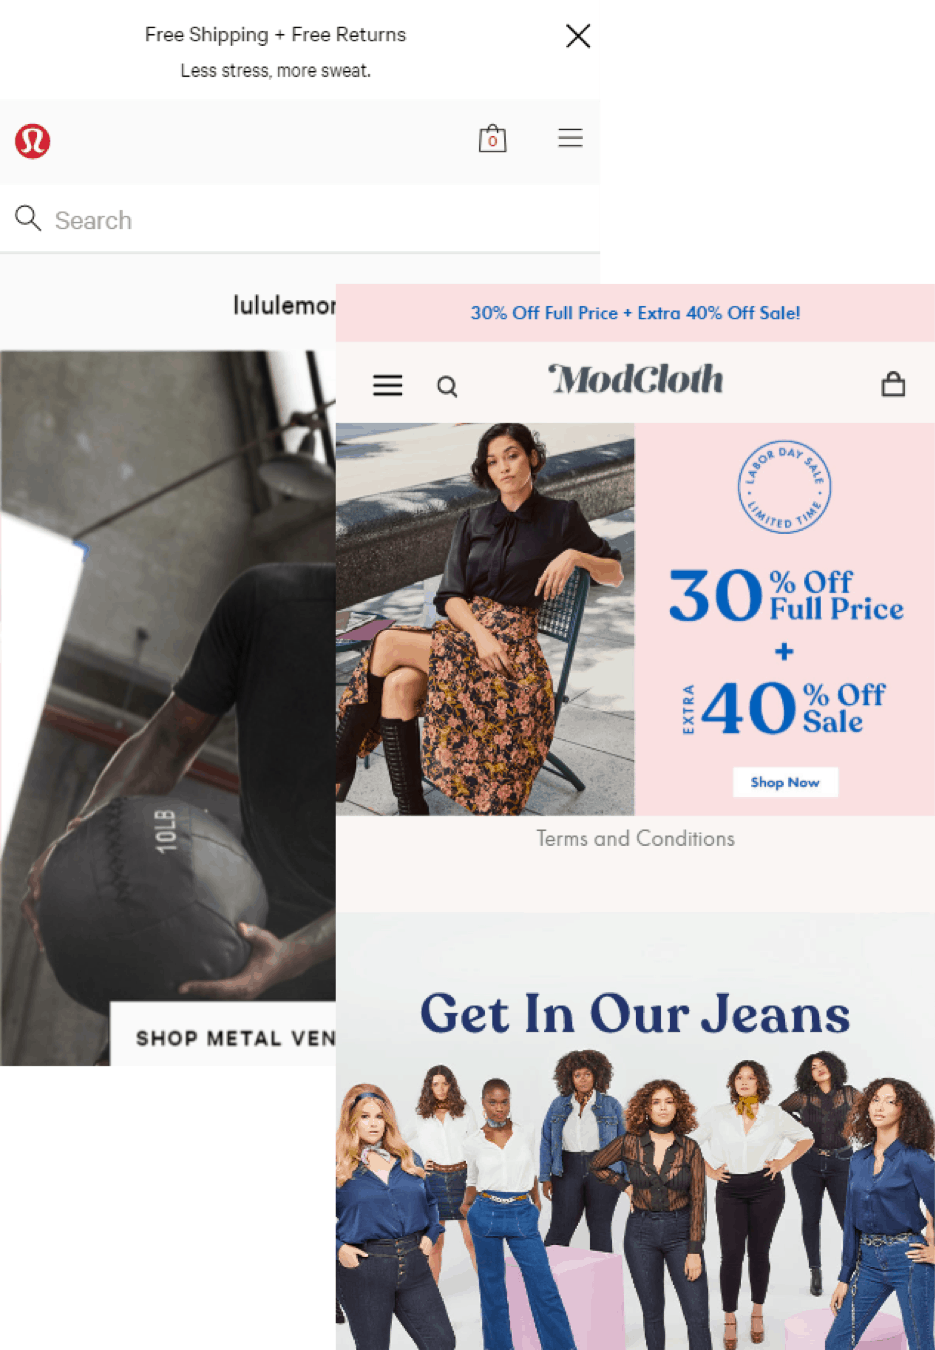 Lululemon and ModCloth screenshots.